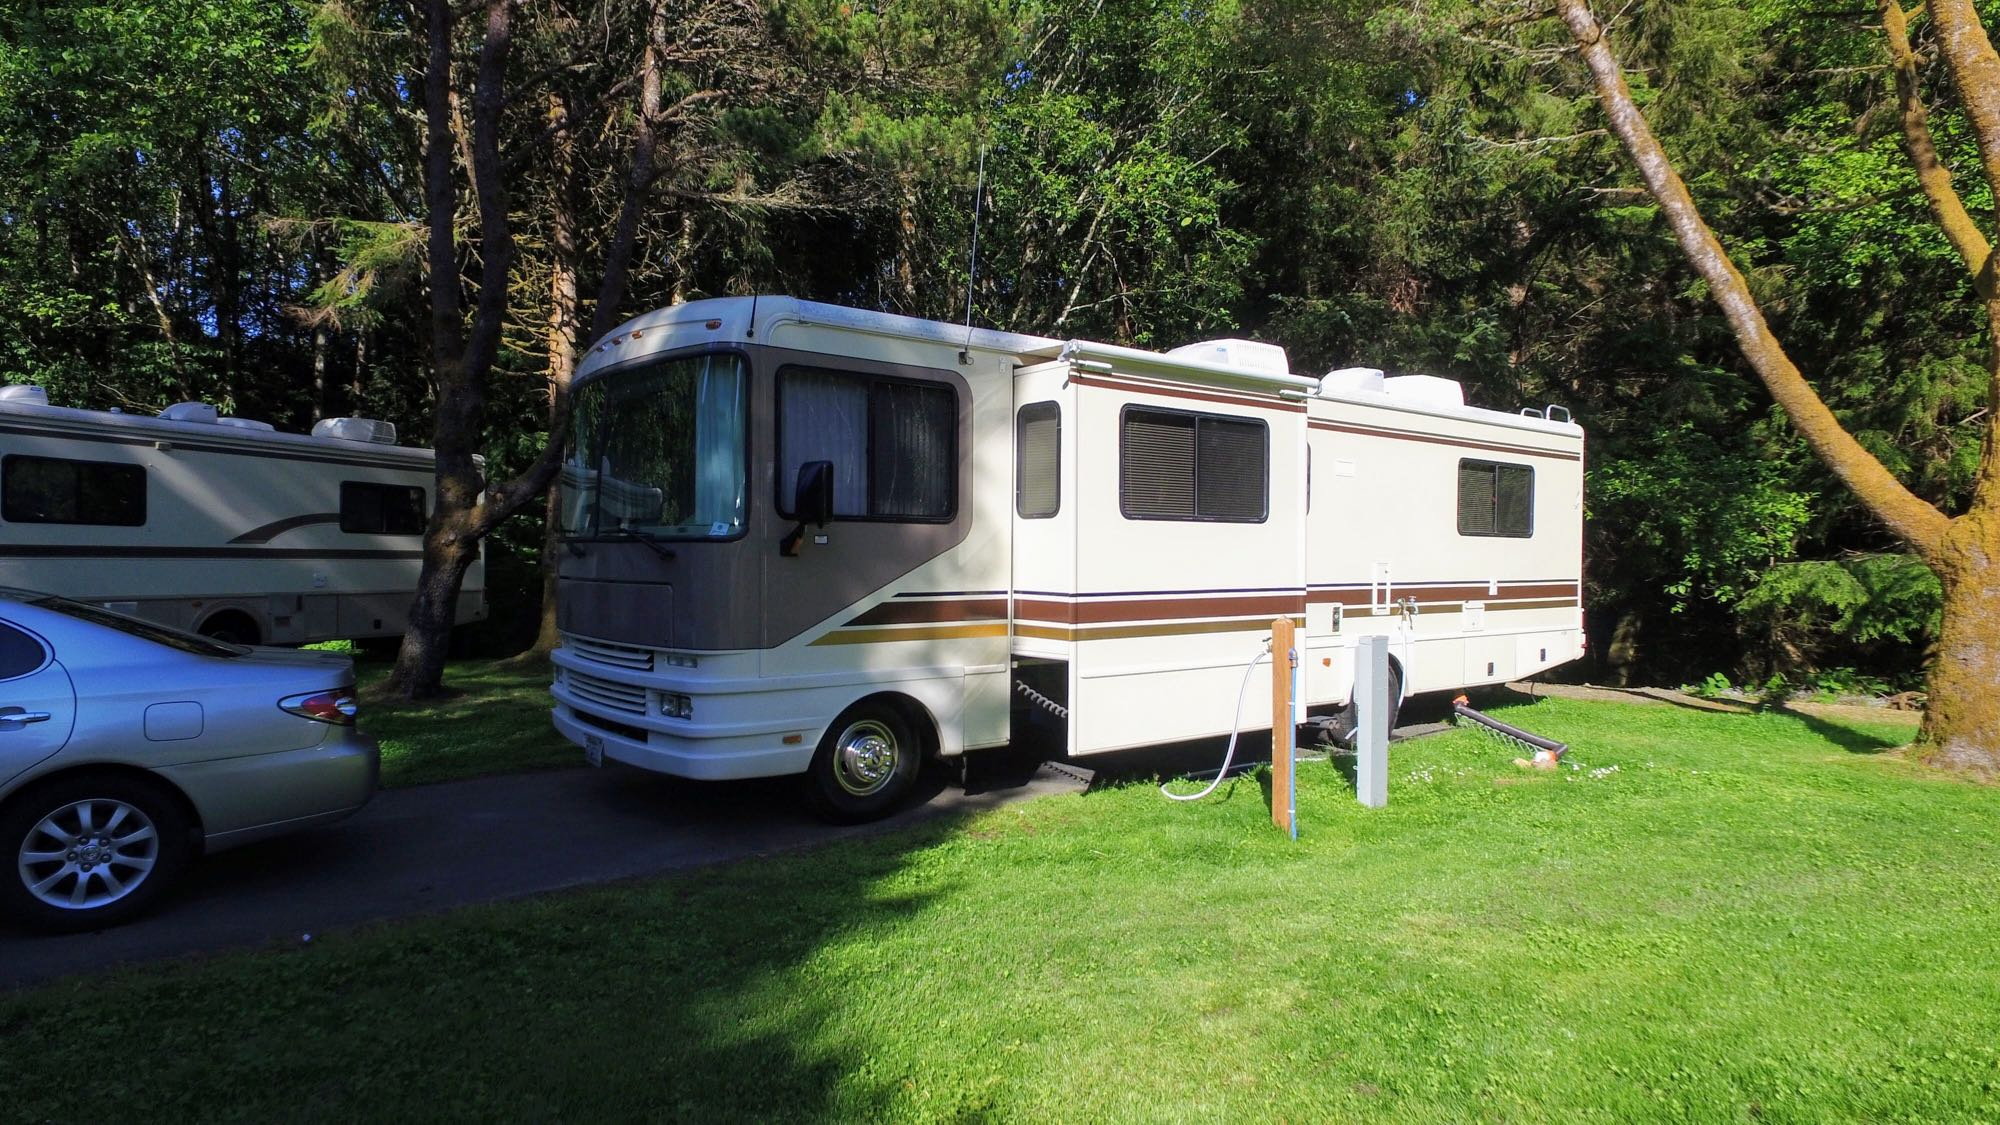 Parked and connected at the Cannon Beach RV Park. Fleetwood 32S 1997